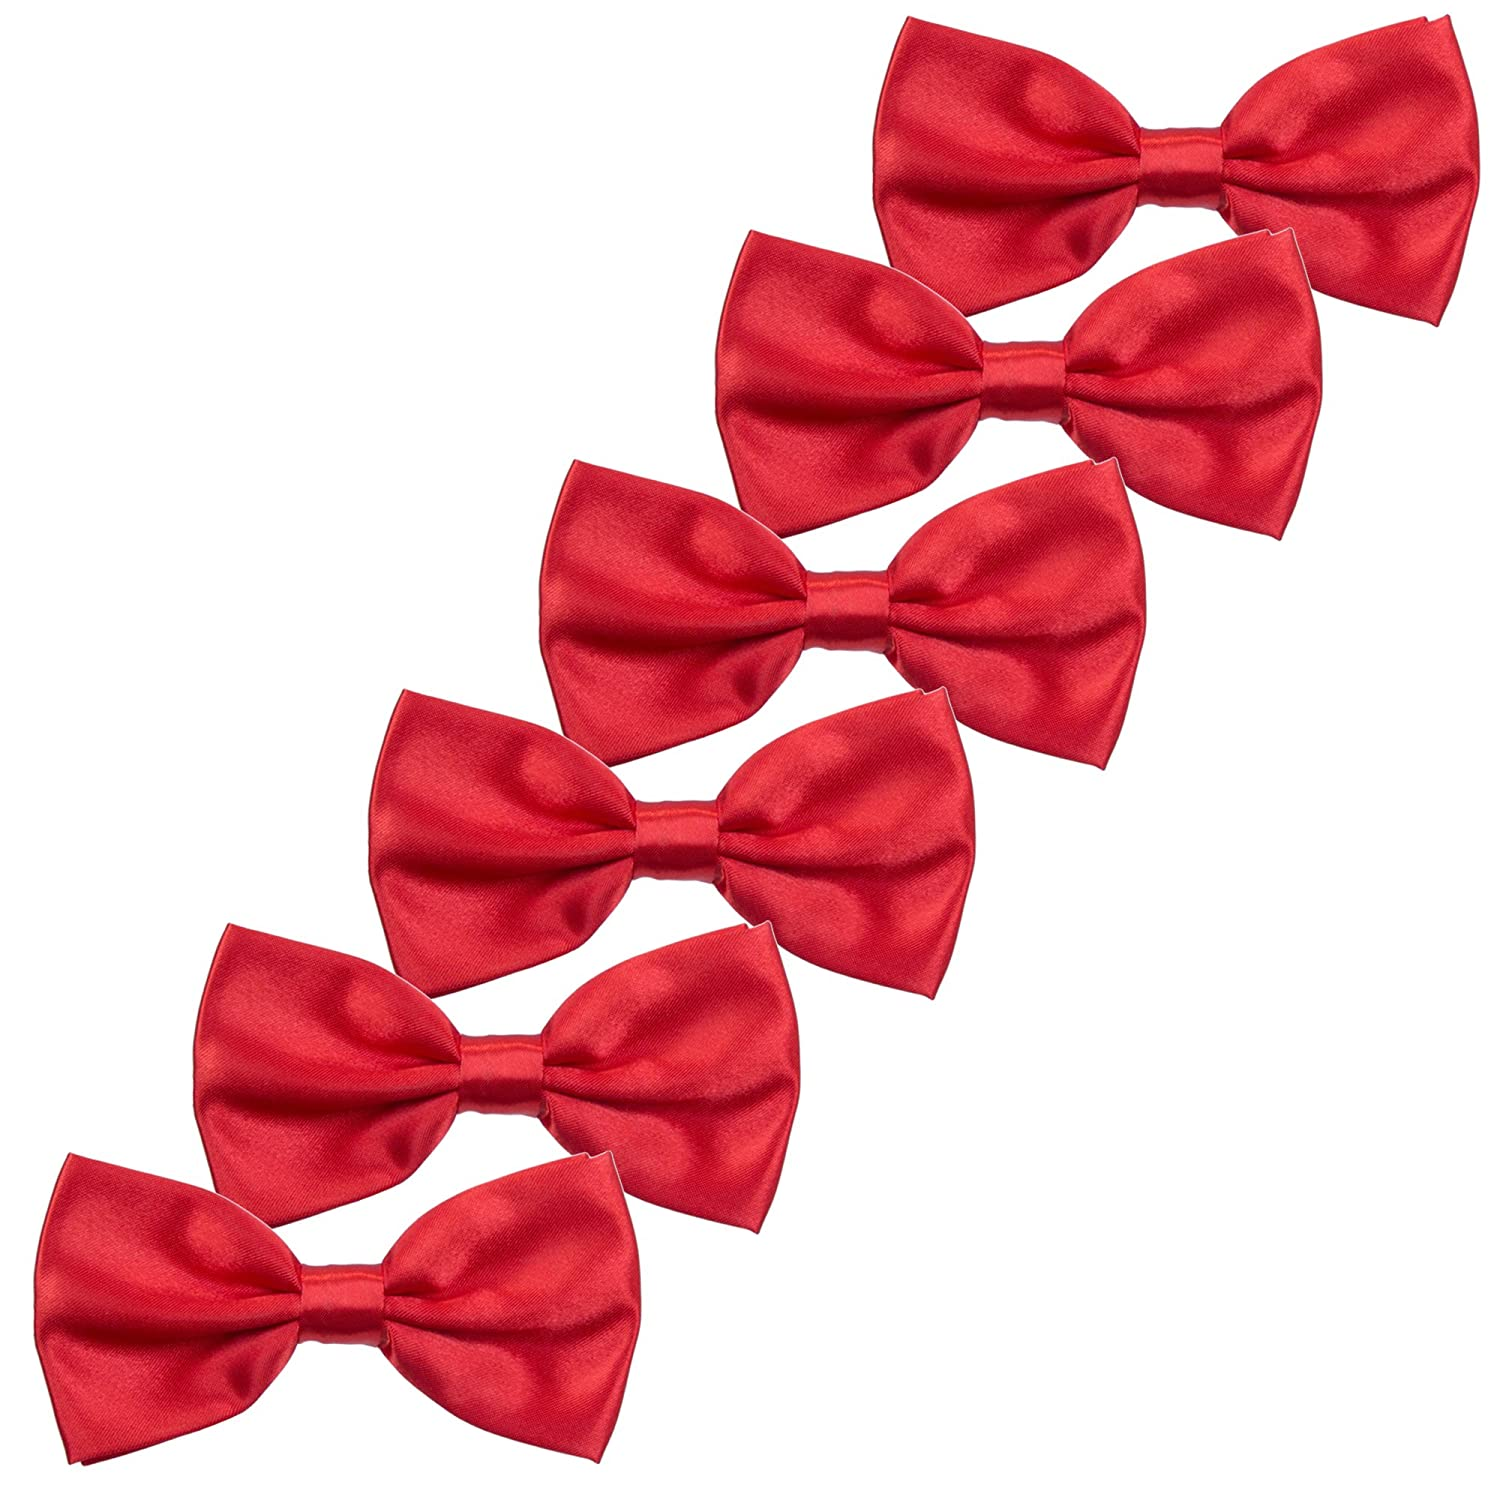 Boys Children Formal Bow Ties - 6 Pack of Solid Color Adjustable Pre Tied Bowties() Jerrybaby